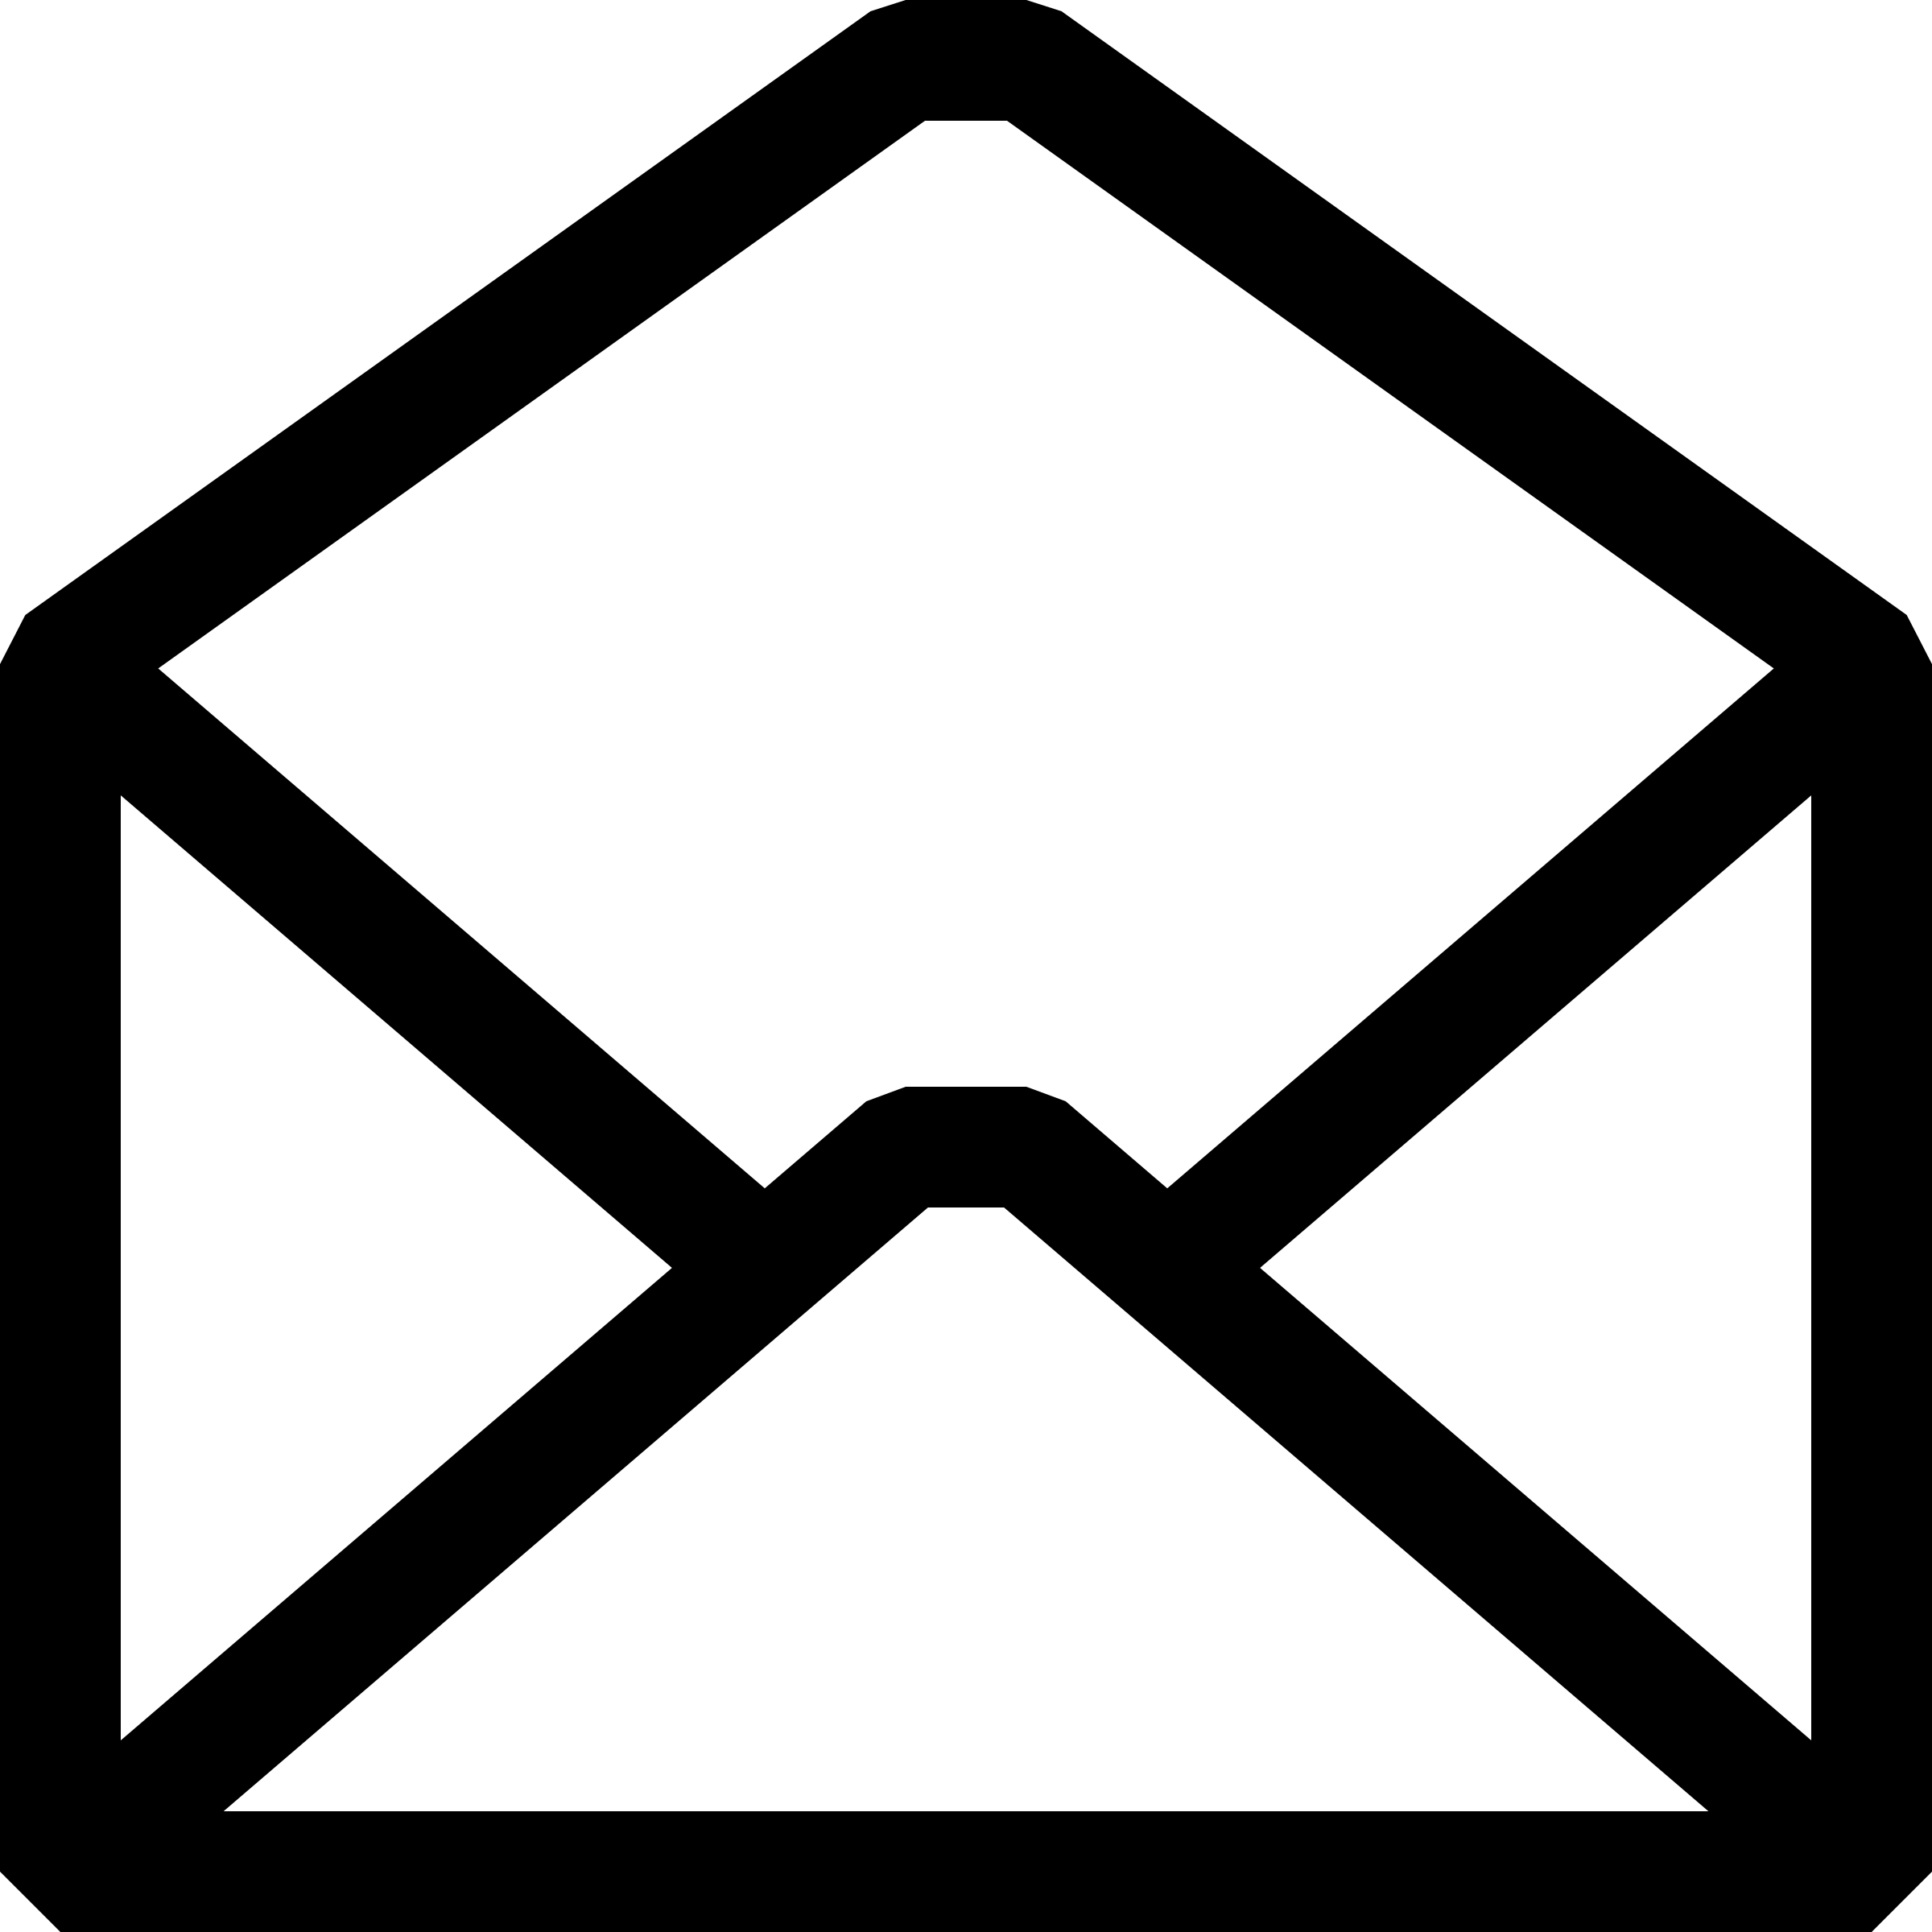 X px capable black. Mail clipart interoffice mail